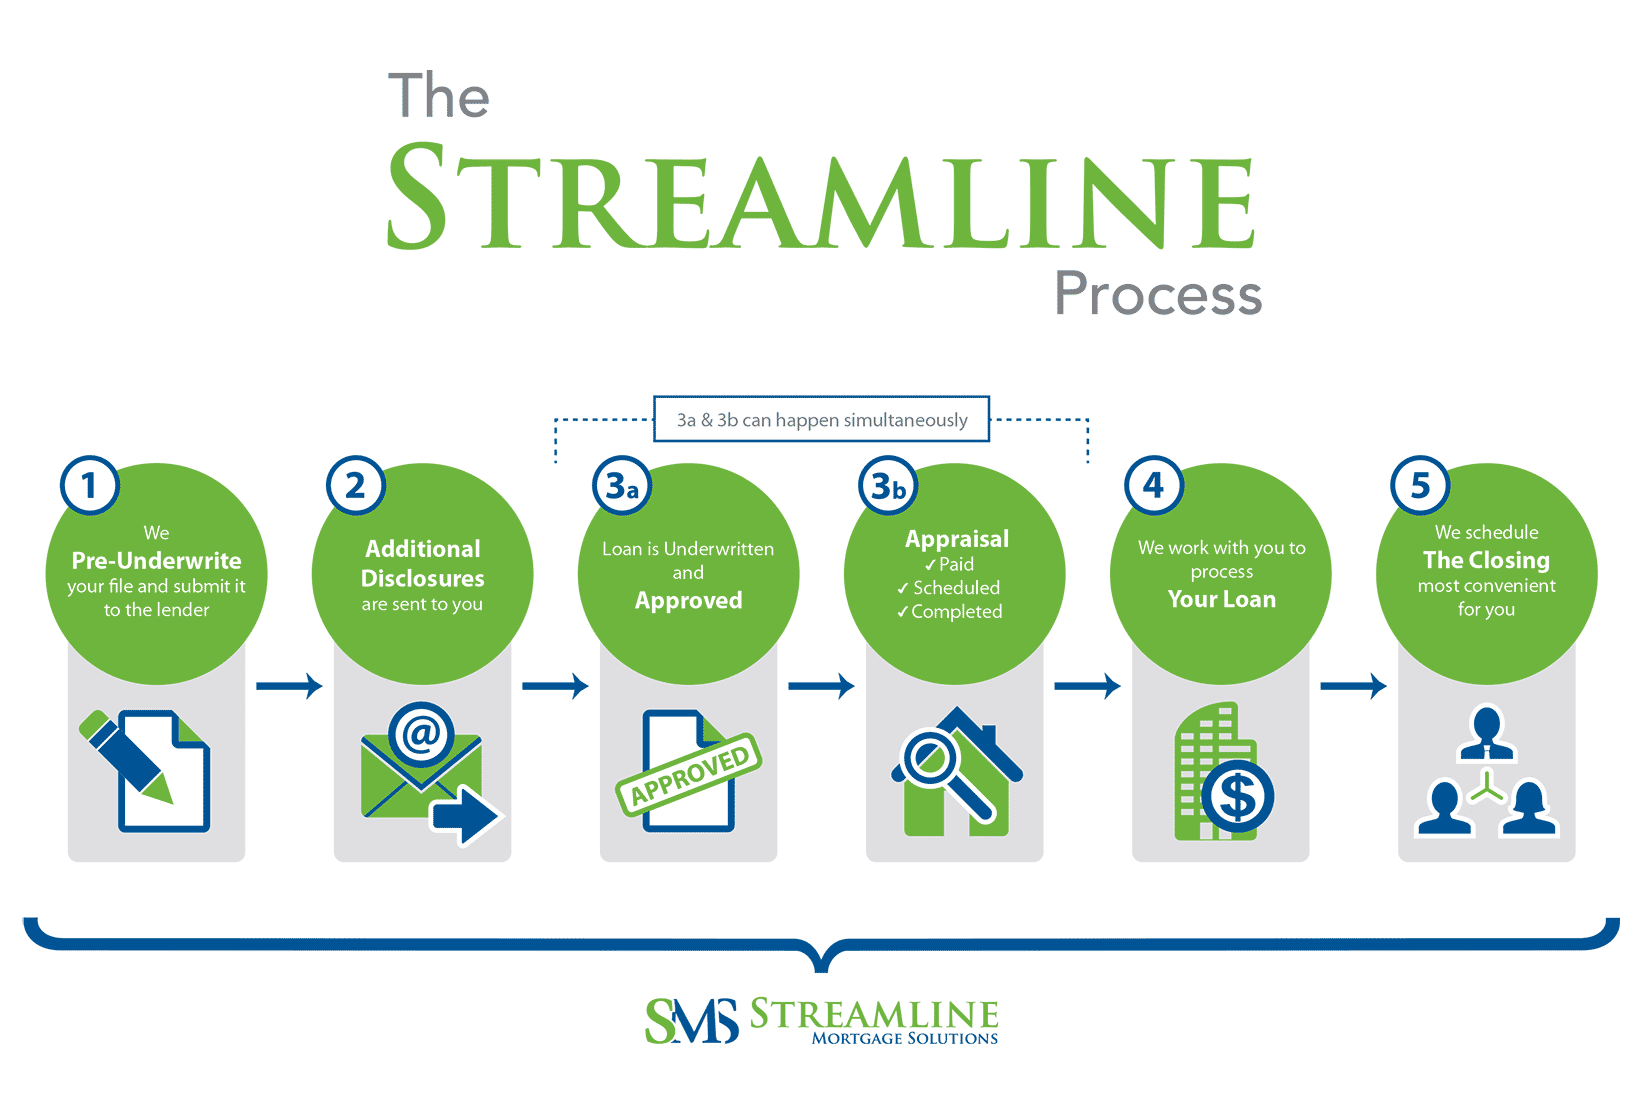 THE-STREAMLINE-PROCESS